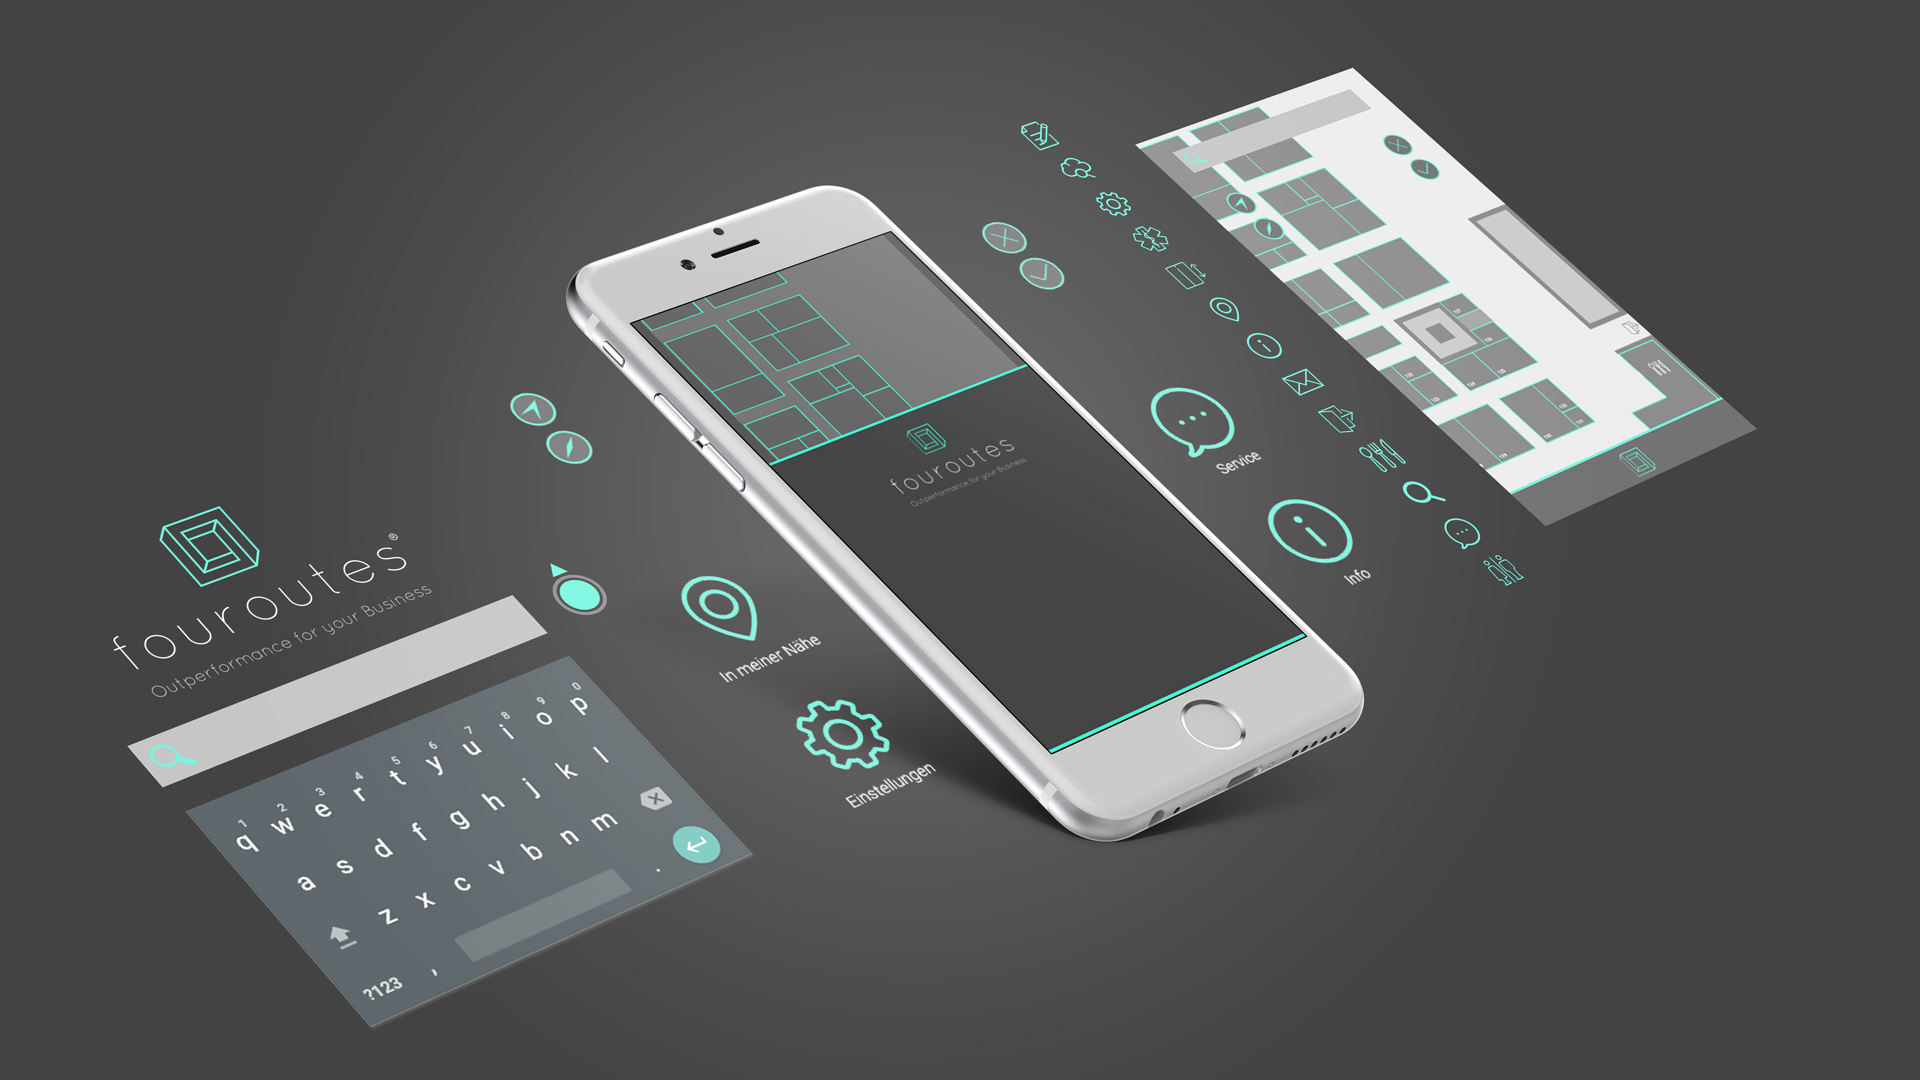 Fouroutes Appdesign Mockup